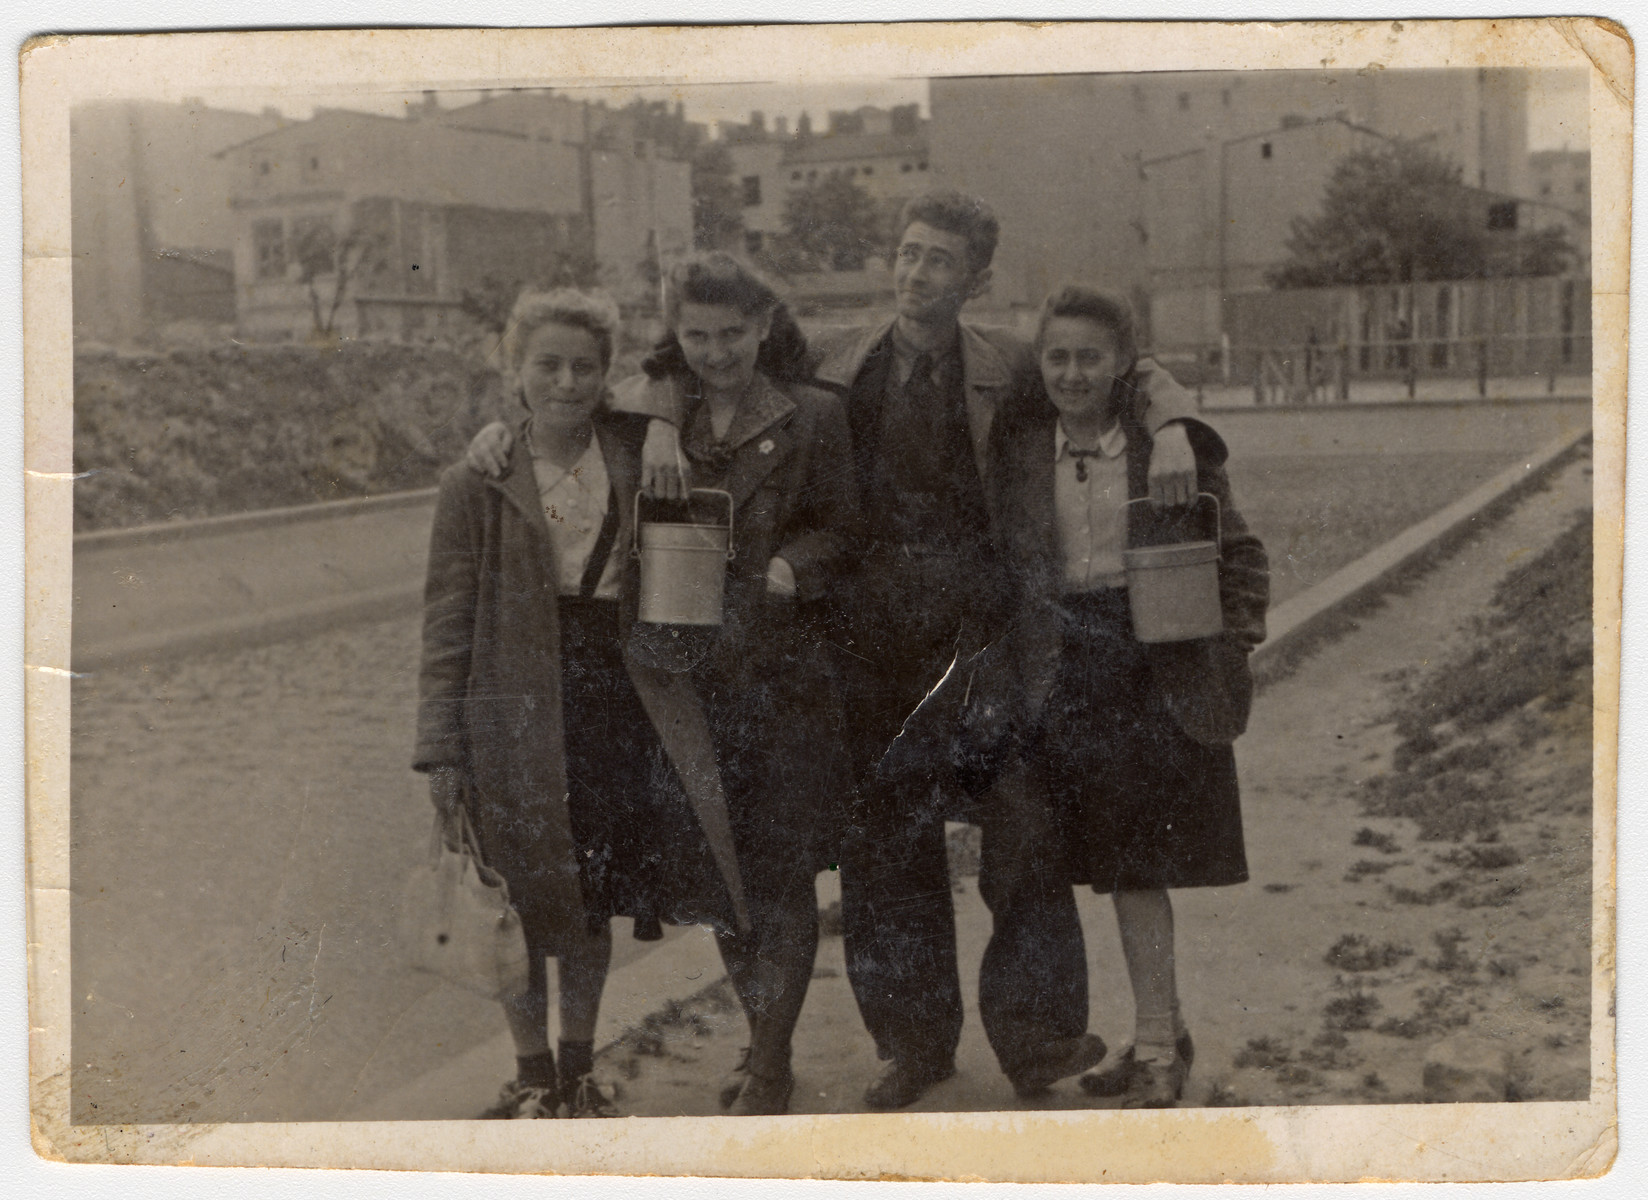 A group of teenagers hold lunch pails in case there will be a distribution of soup while standing in on Marynarska street in the Lodz ghetto.    Pictured from the left are: Rozka Grosman (later Zilbar -- Mendel Grosman's sister), Rachel Beim, Arie Princ (later Ben Menachem) and his fiancee Ewa Bialer.